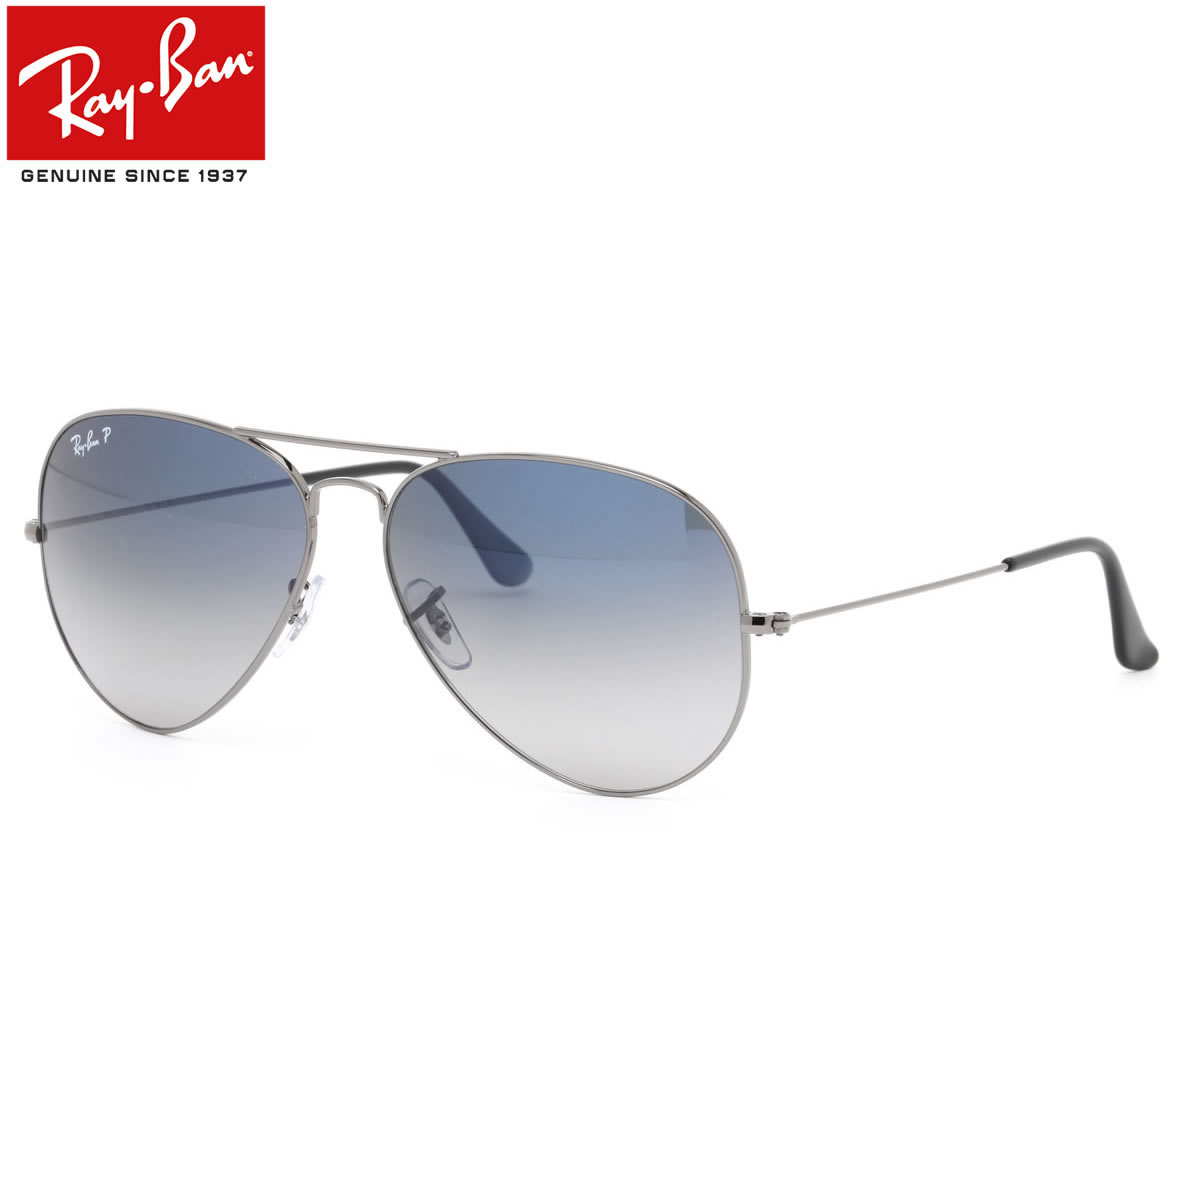 rb3025 62 original aviator r7bi  RB3025 is a model called the AVIATOR Aviator, Teardrop nines with high  popularity in the ray-ban sunglasses And name of CLASSIC METAL classic  metal or